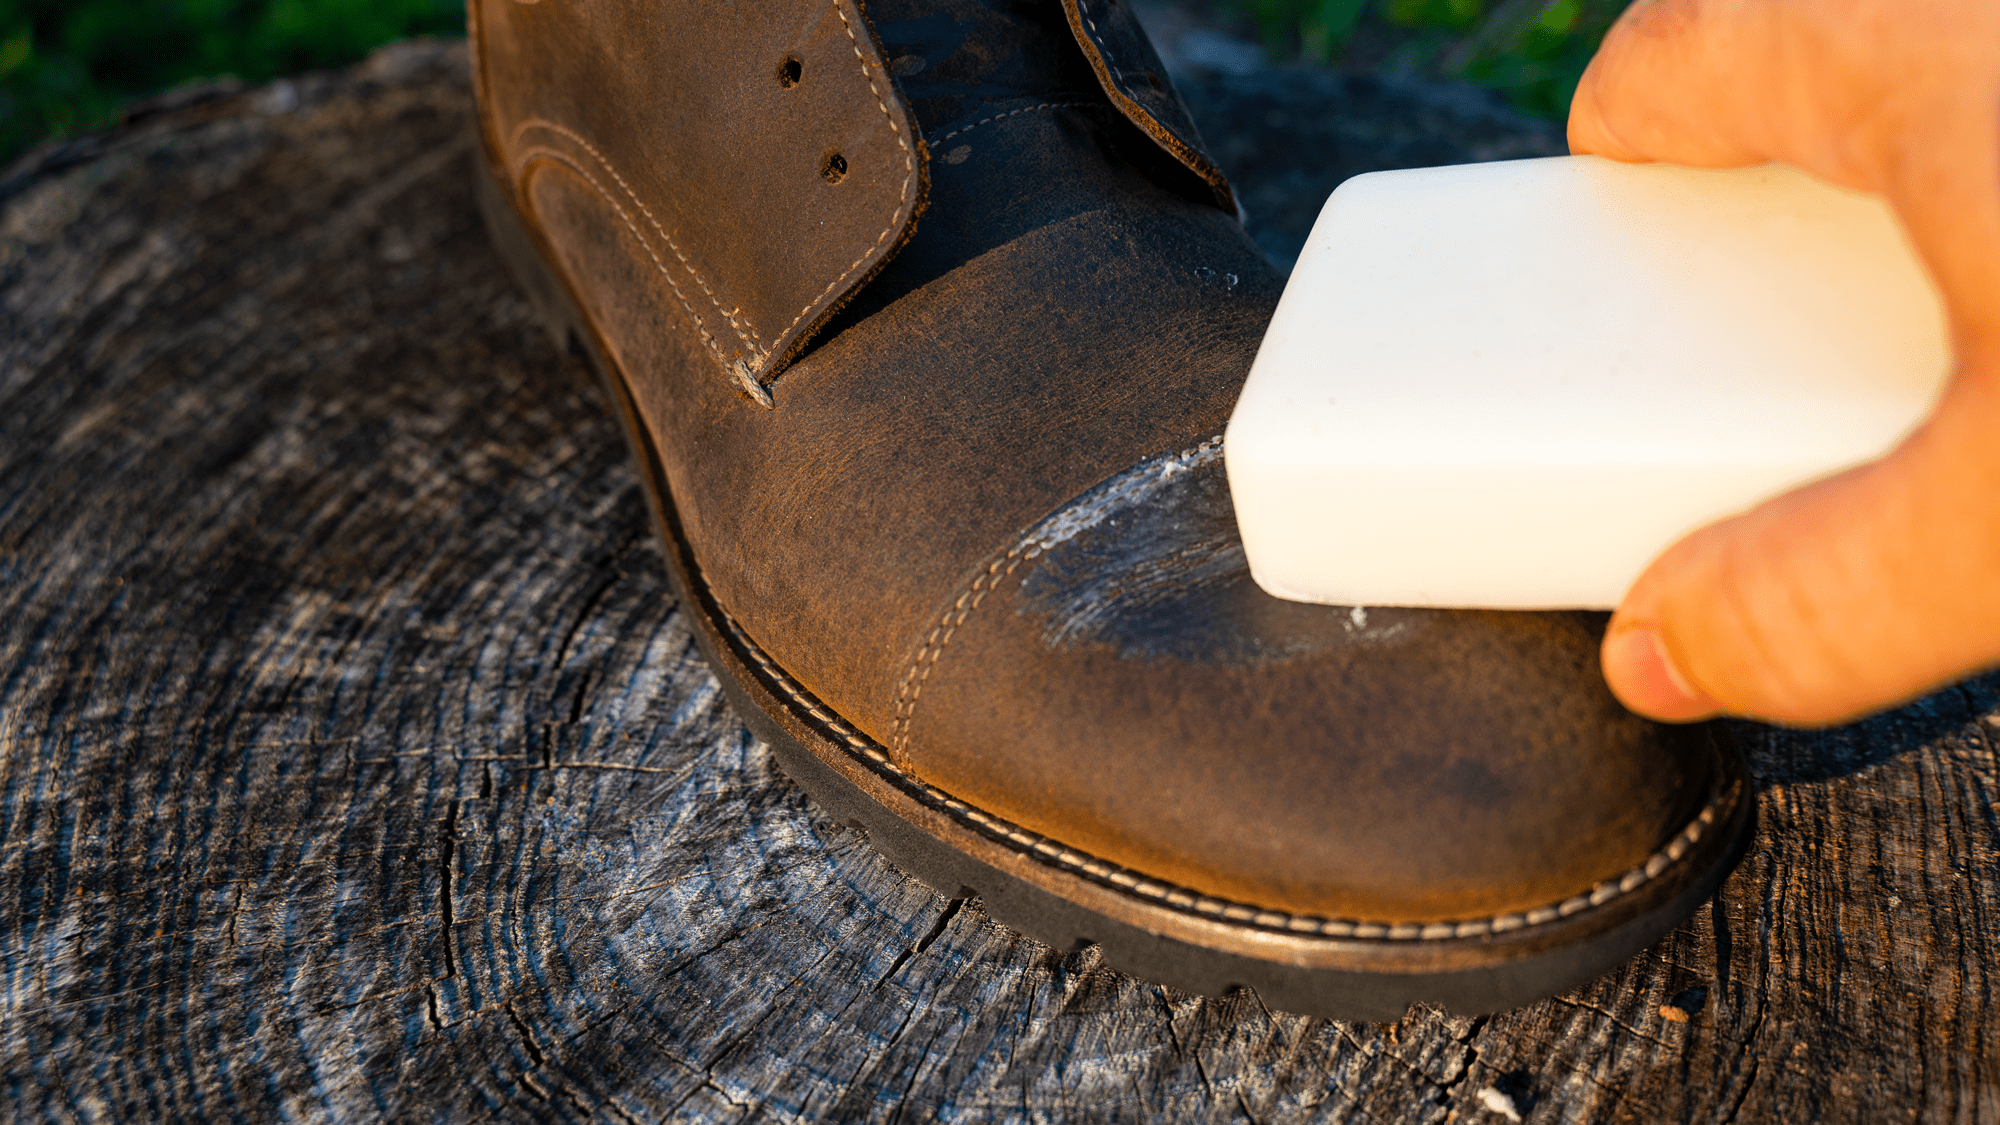 Apply Wax To Swede Shoes